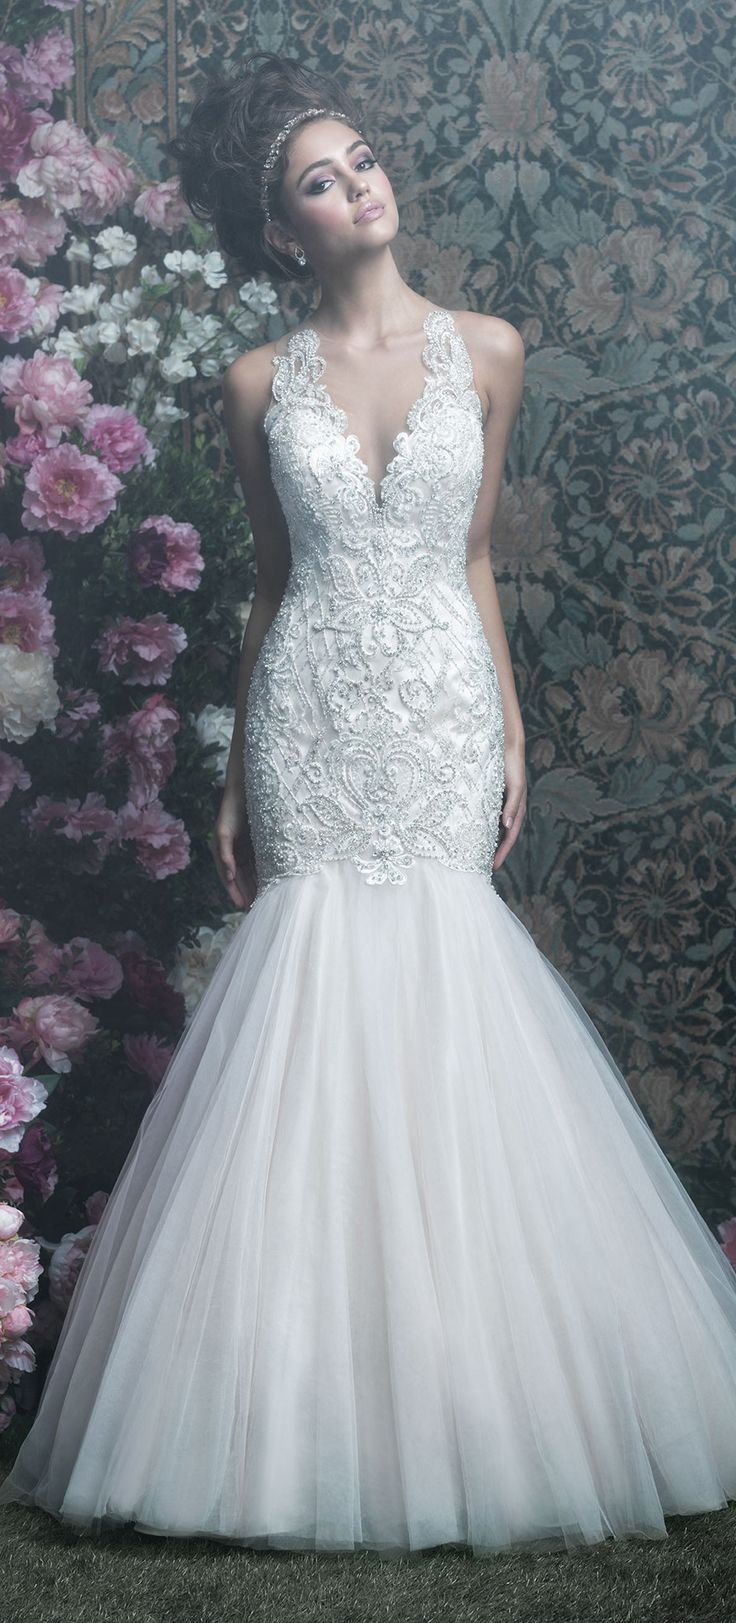 Best 25 Allure couture wedding gowns ideas on Pinterest Allure